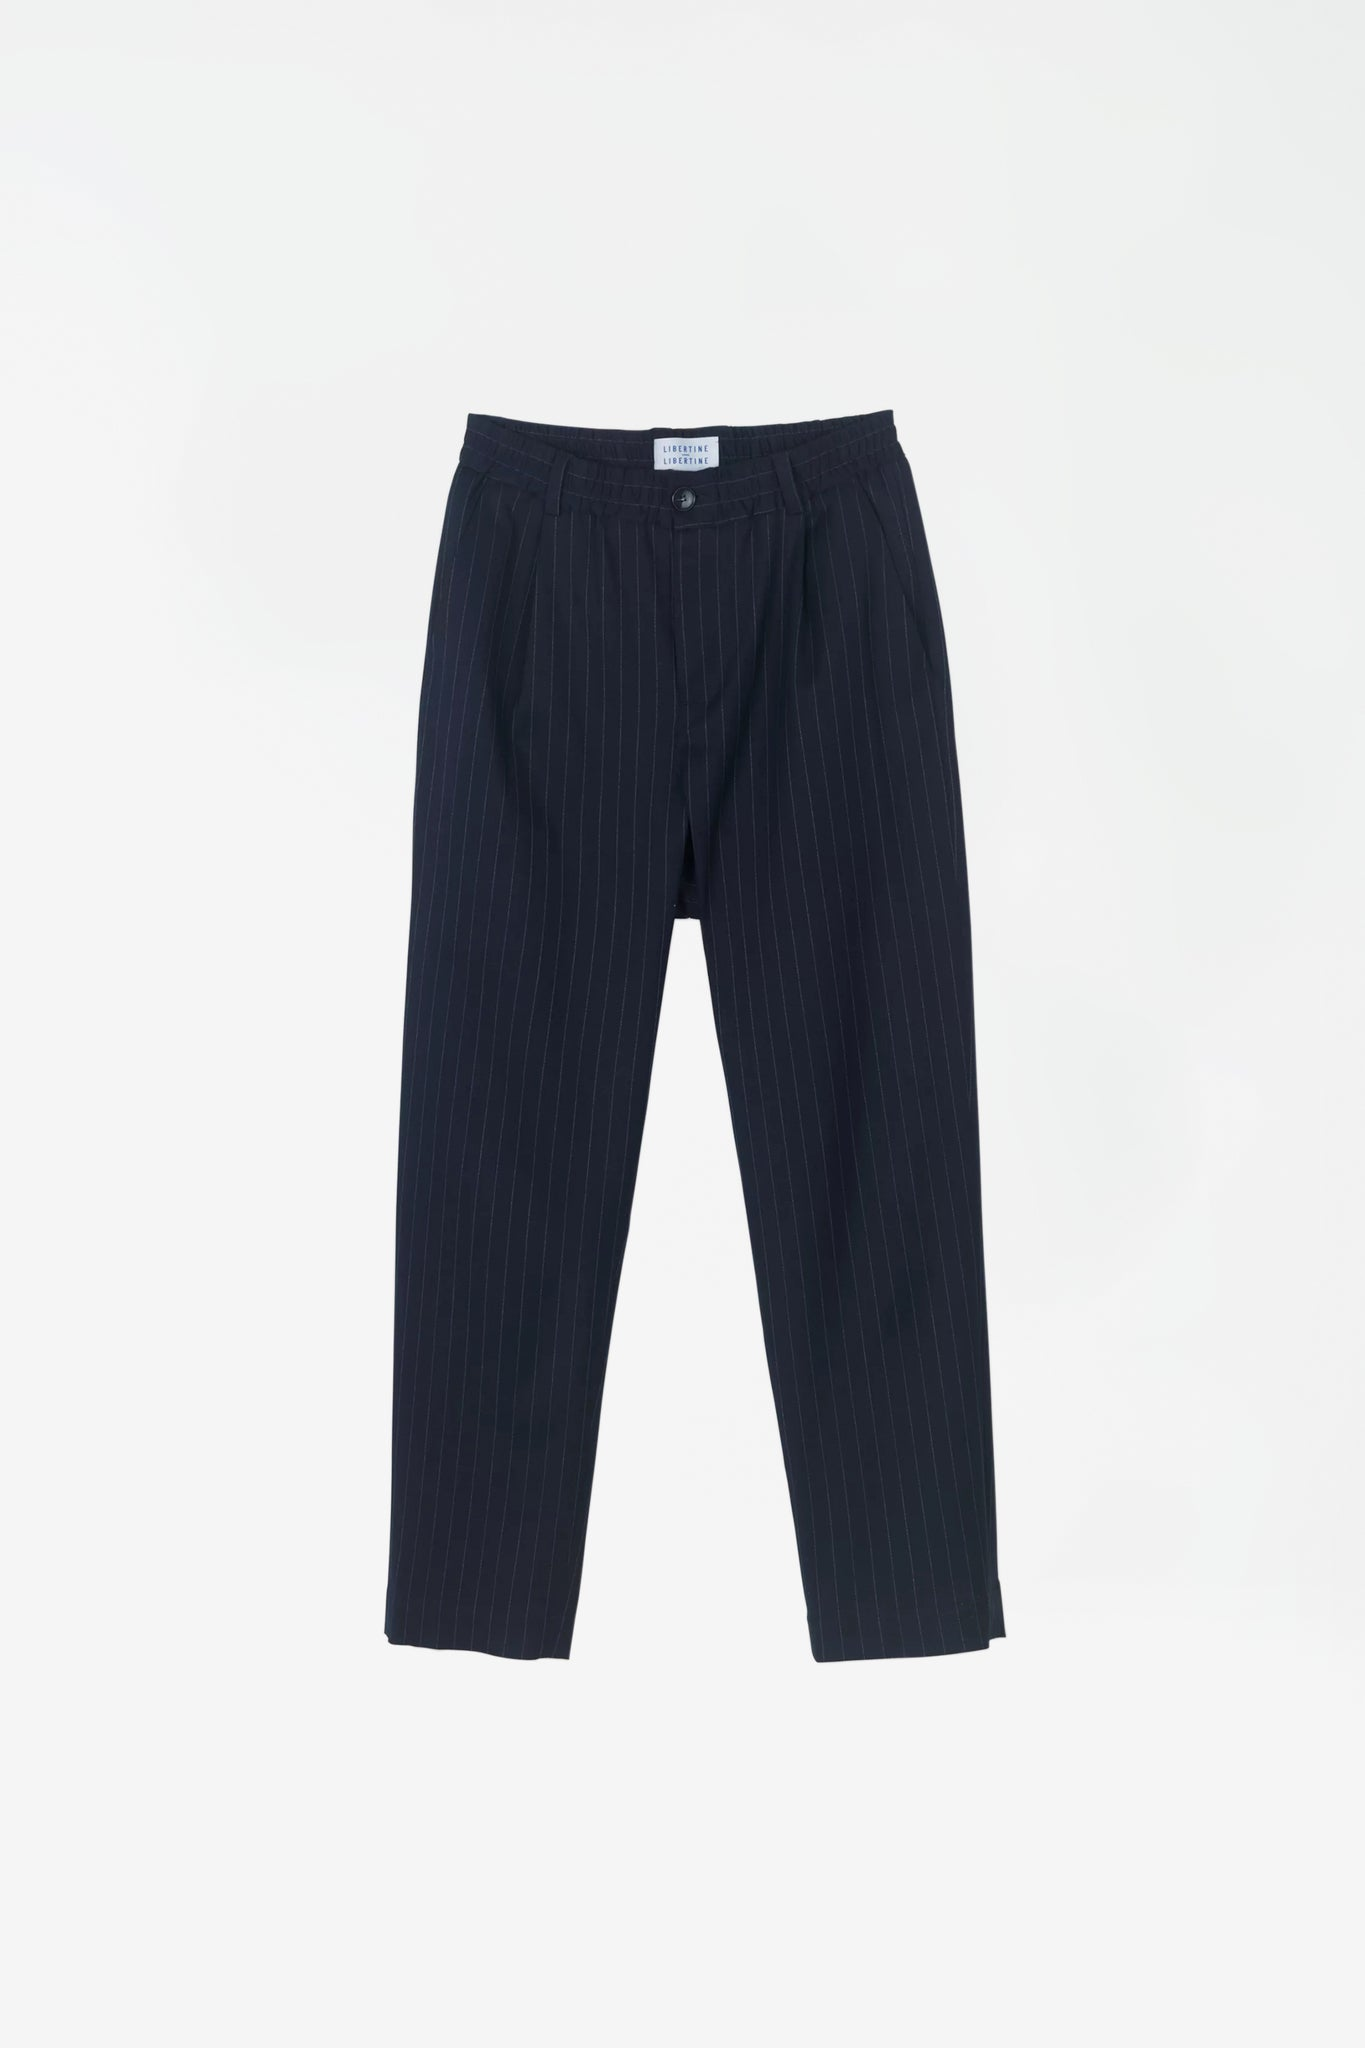 Smoke trousers navy pin stripe